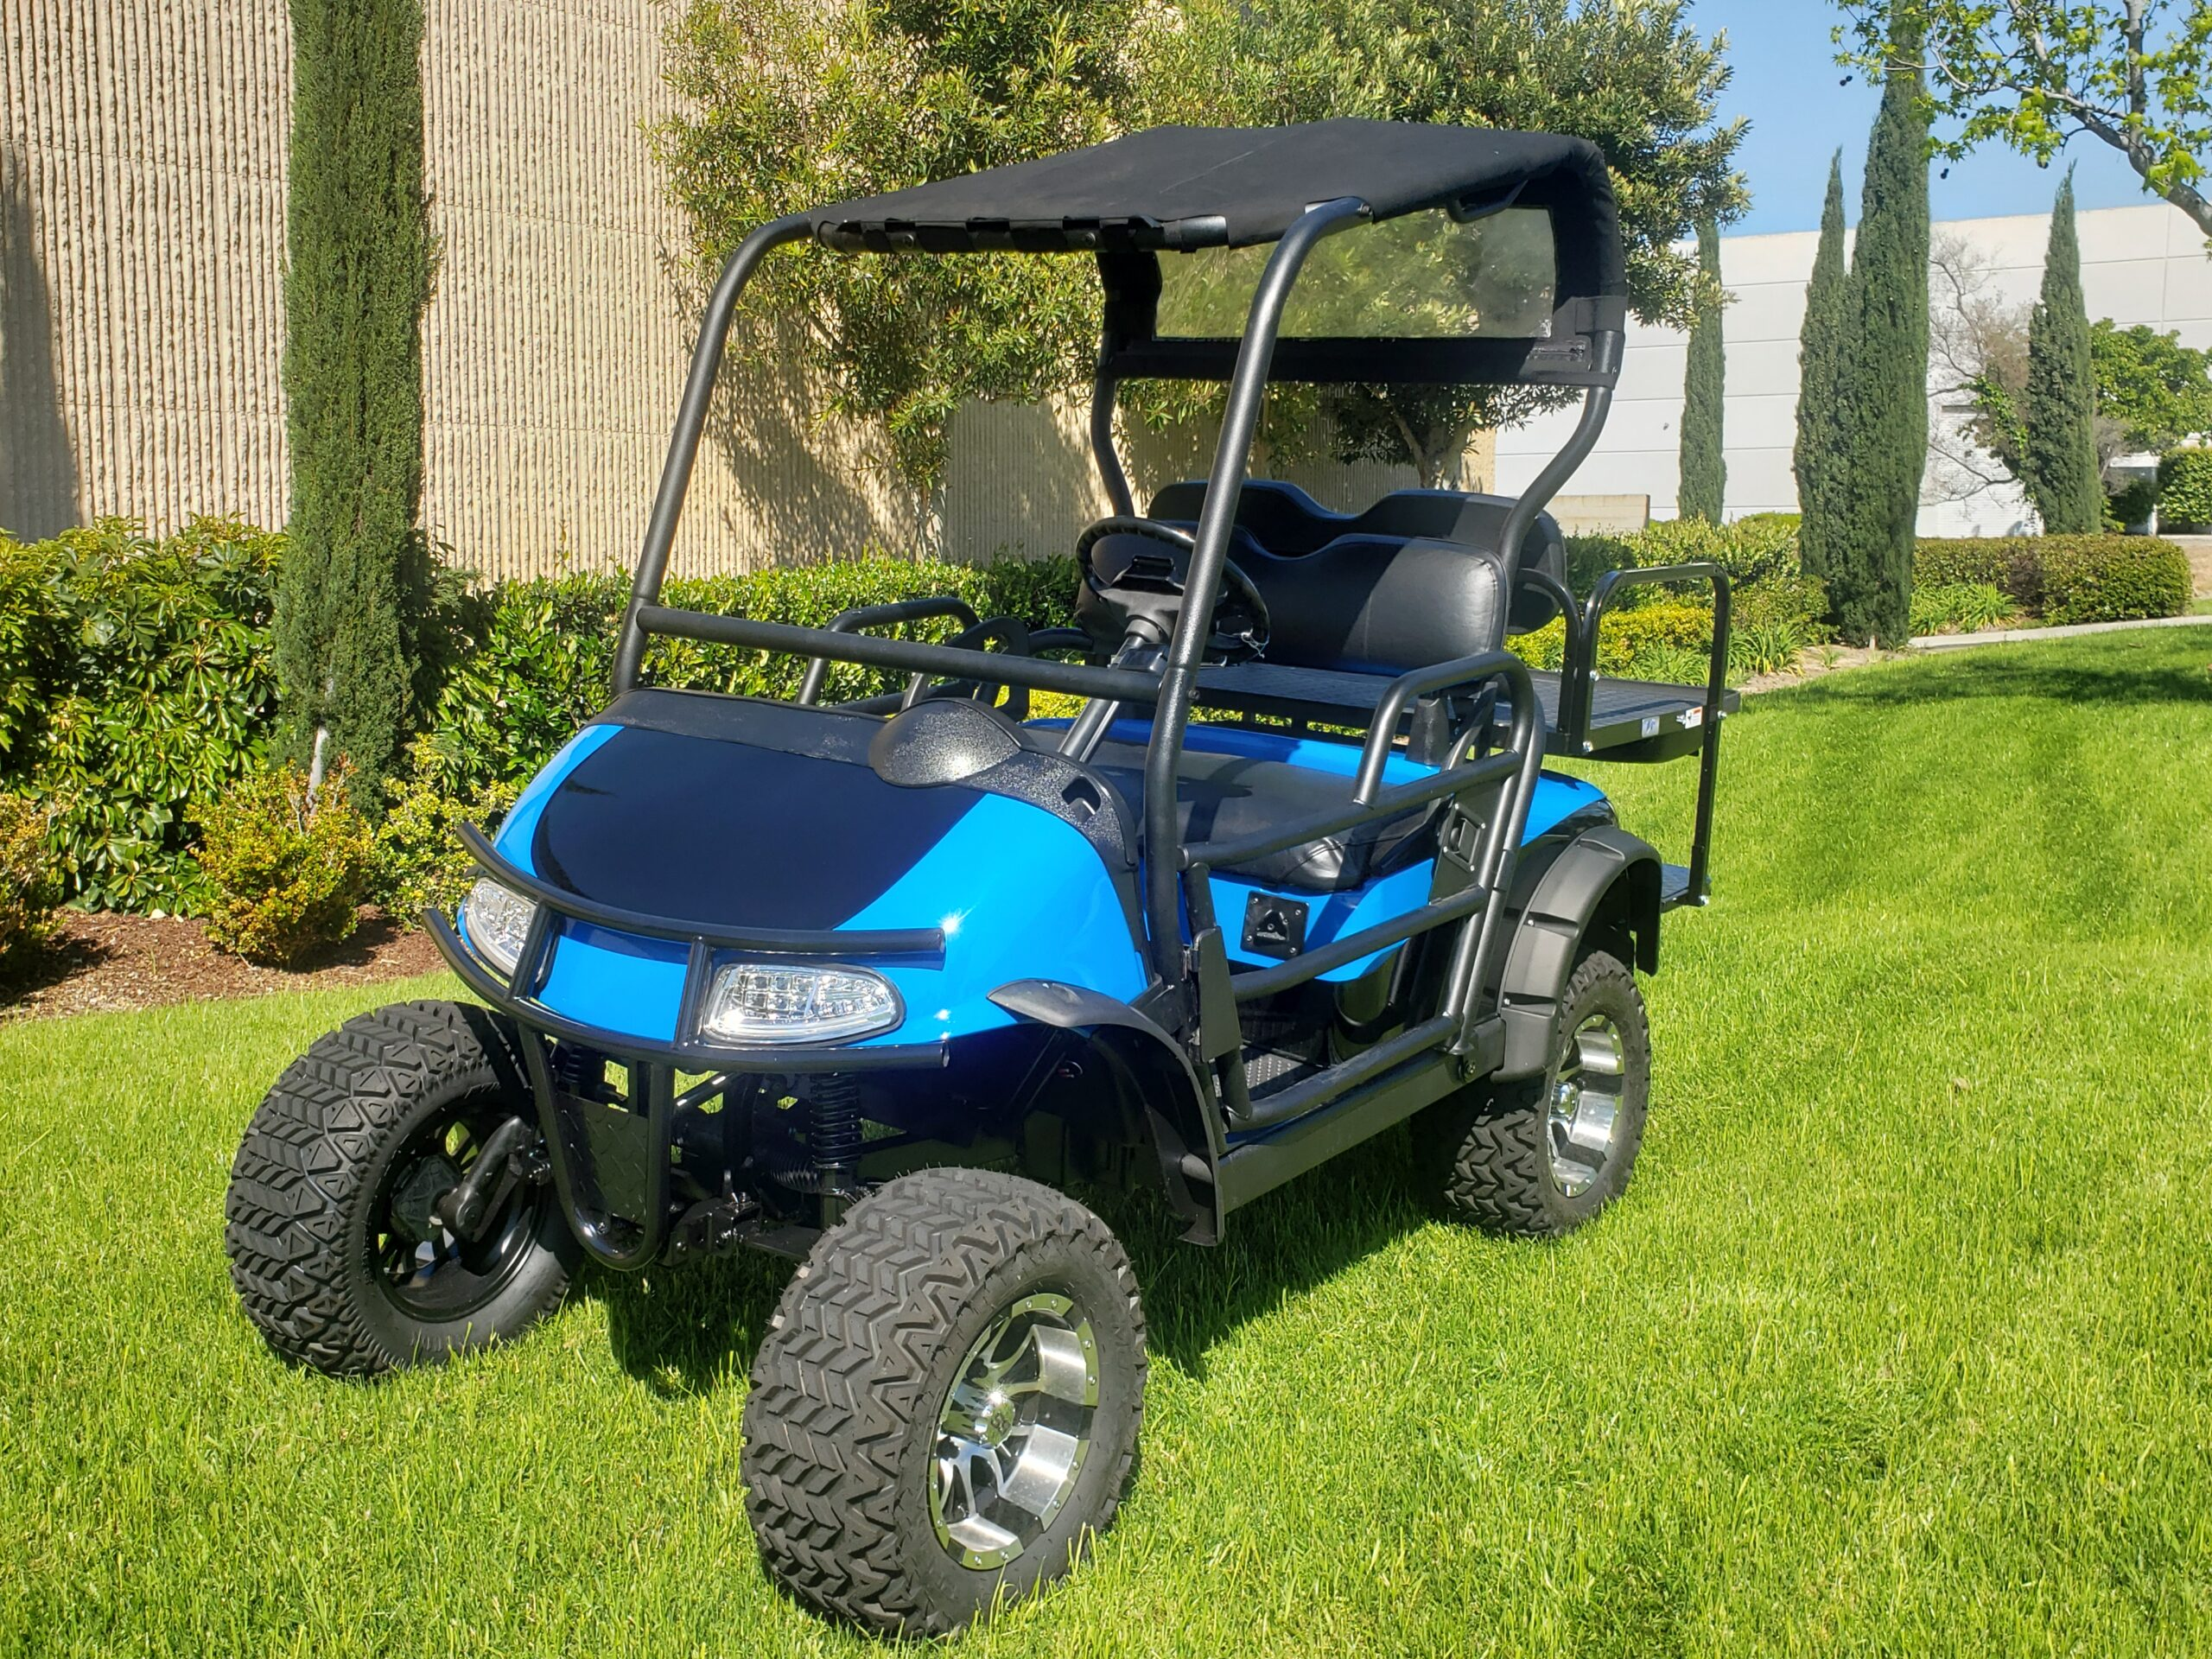 Tricked Out Ezgo RXV Lifted 4 Passenger Golf Cart- Two Tone Voodoo Blue / Black